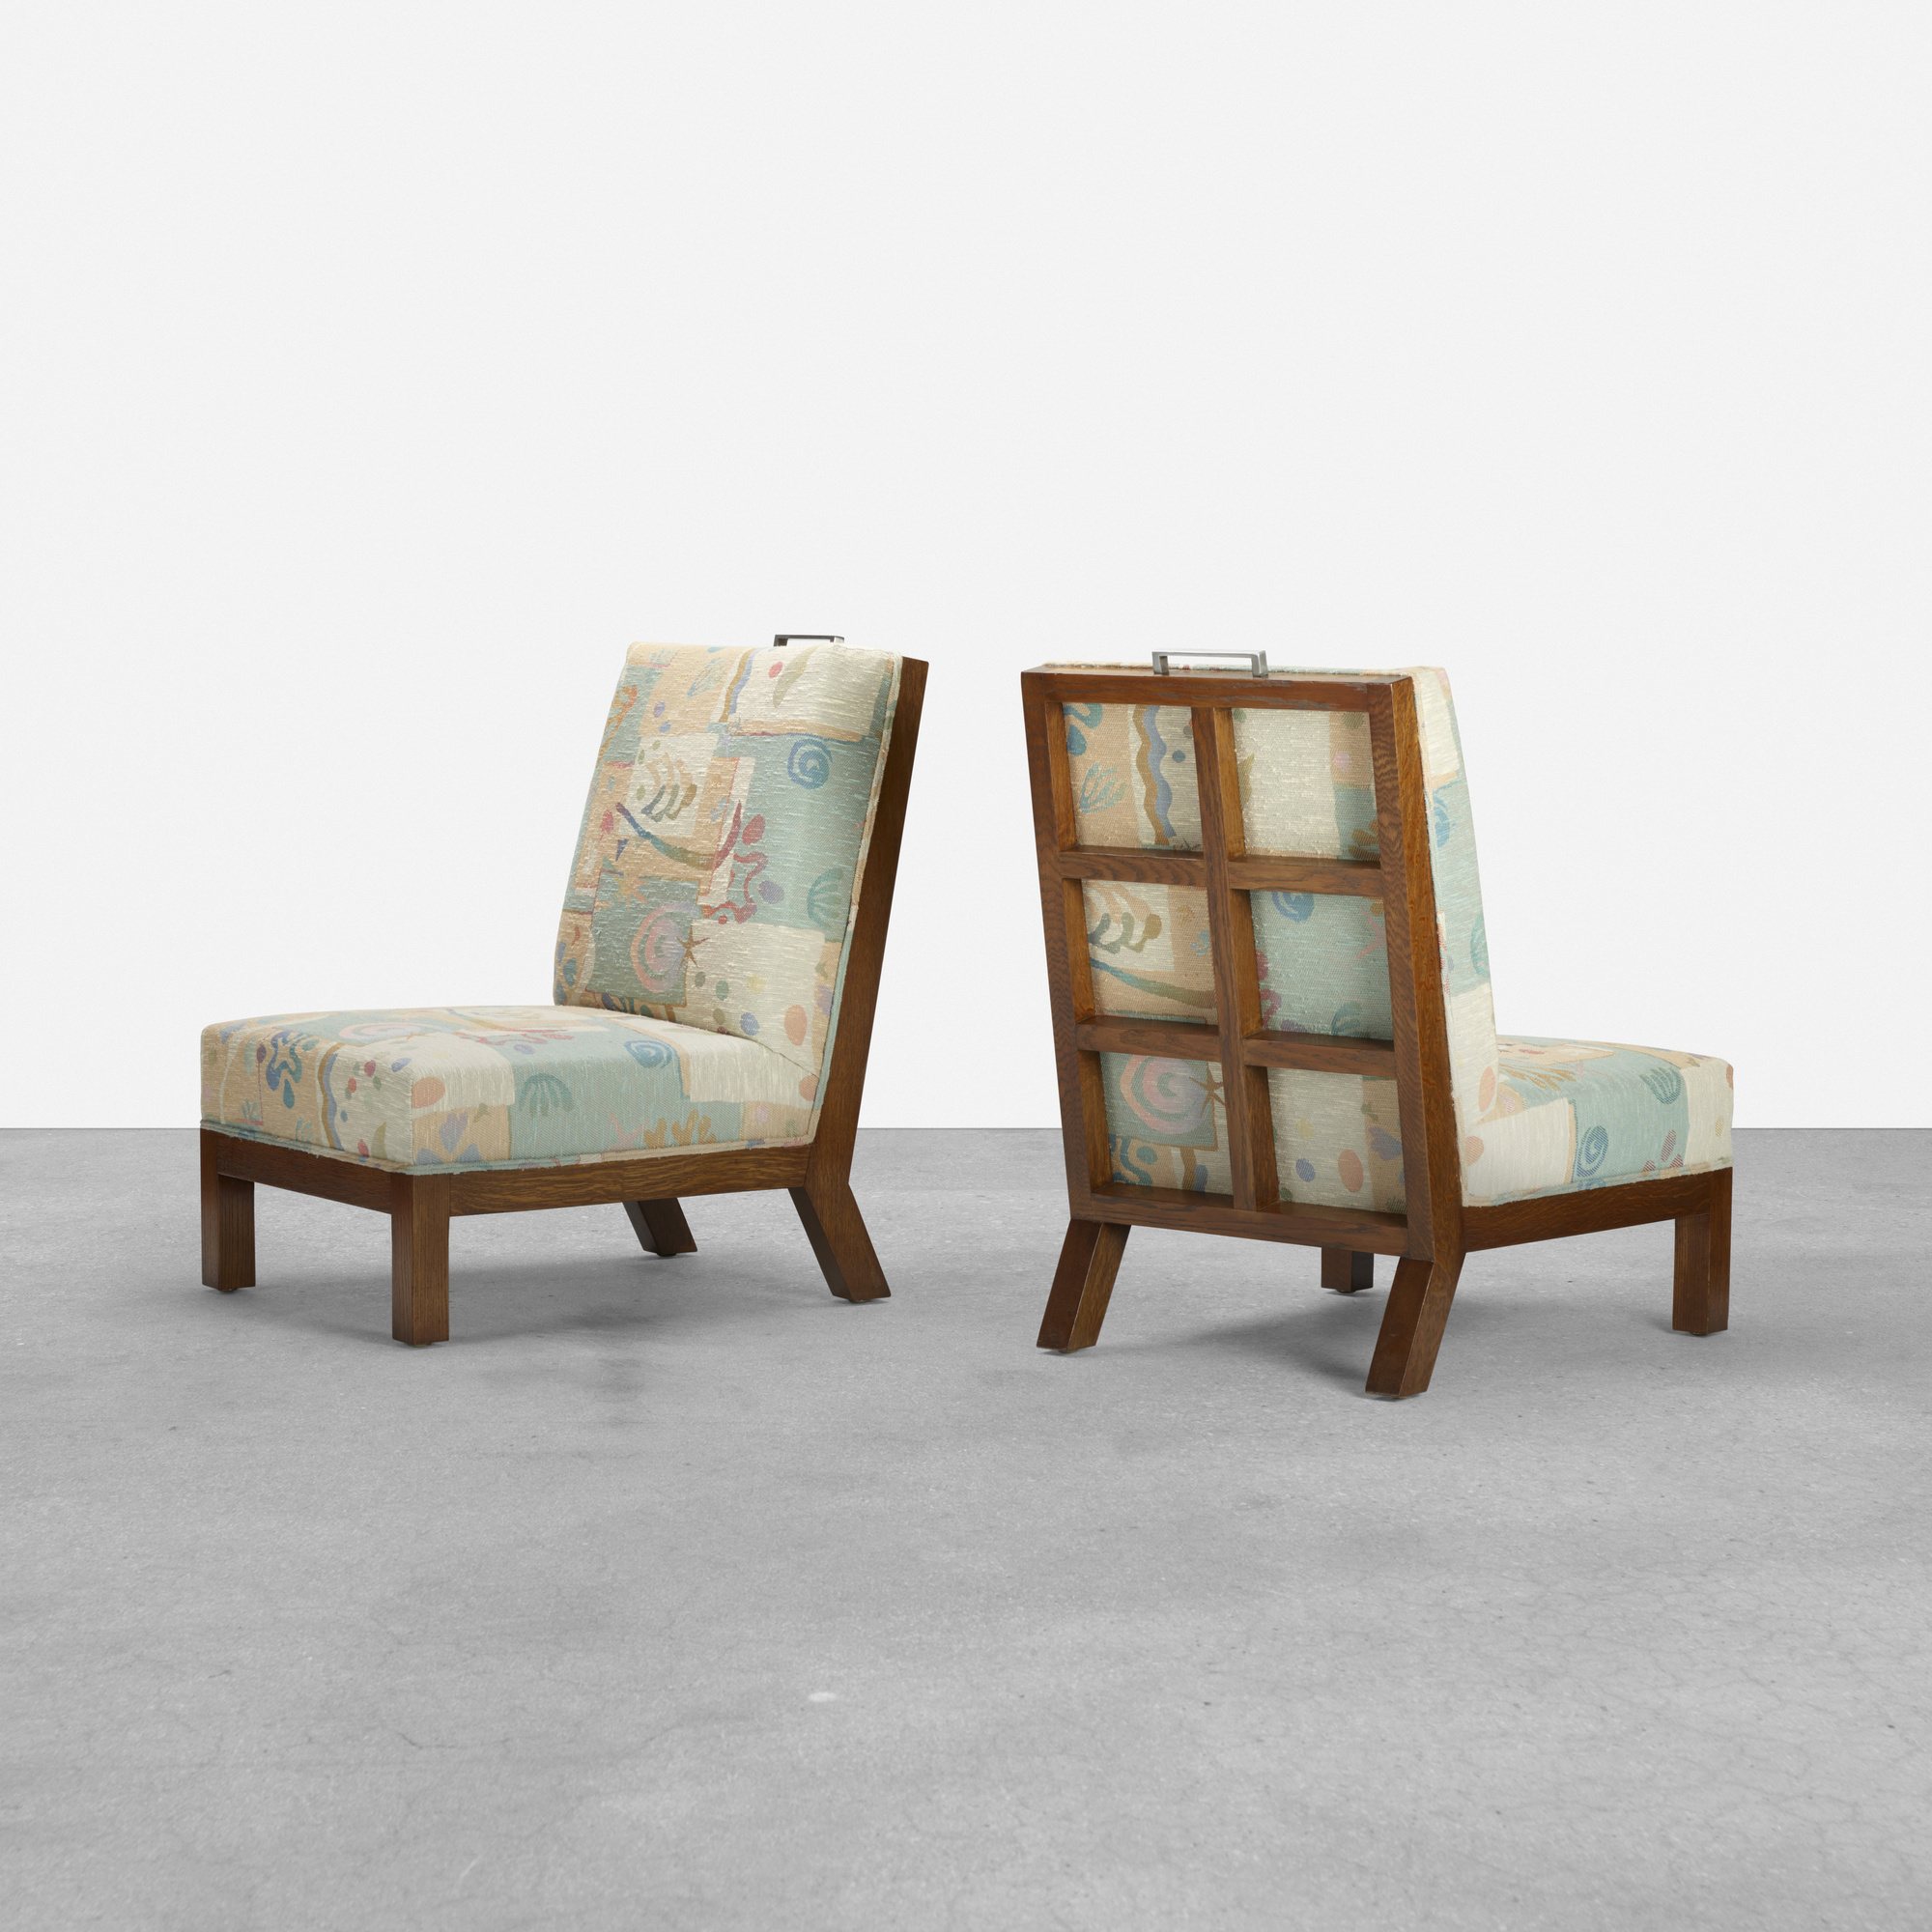 191: Samuel Marx / pair of lounge chairs from the Morton D. May House (1 of 3)